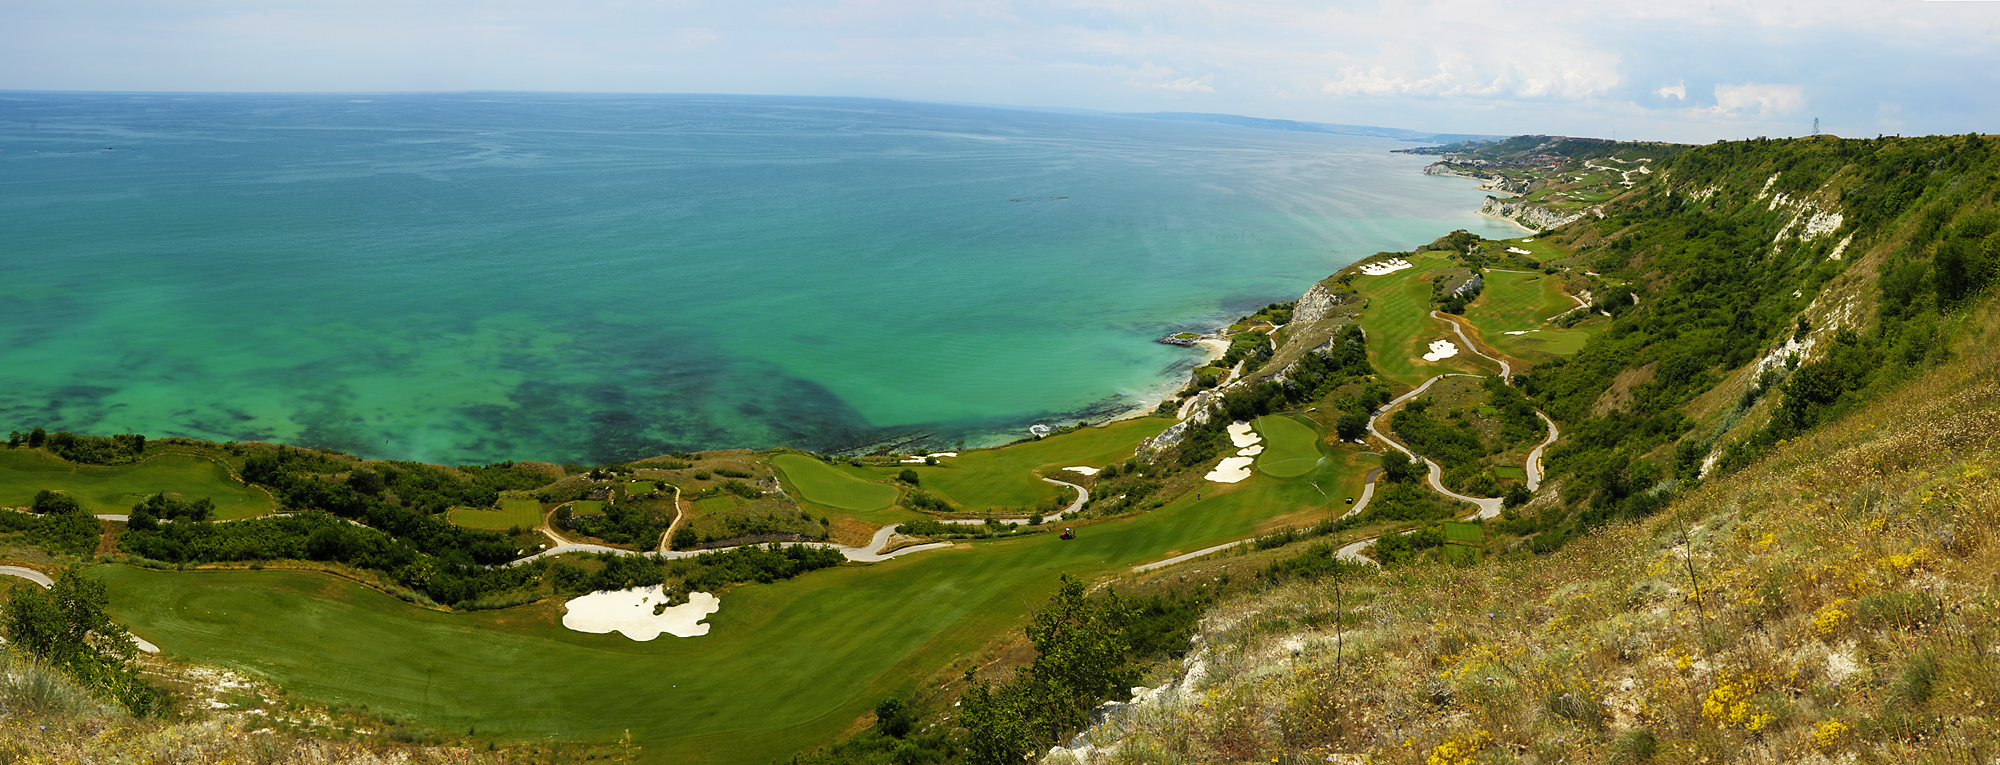 Overview of golf course named Thracian Cliffs Golf and Beach Resort